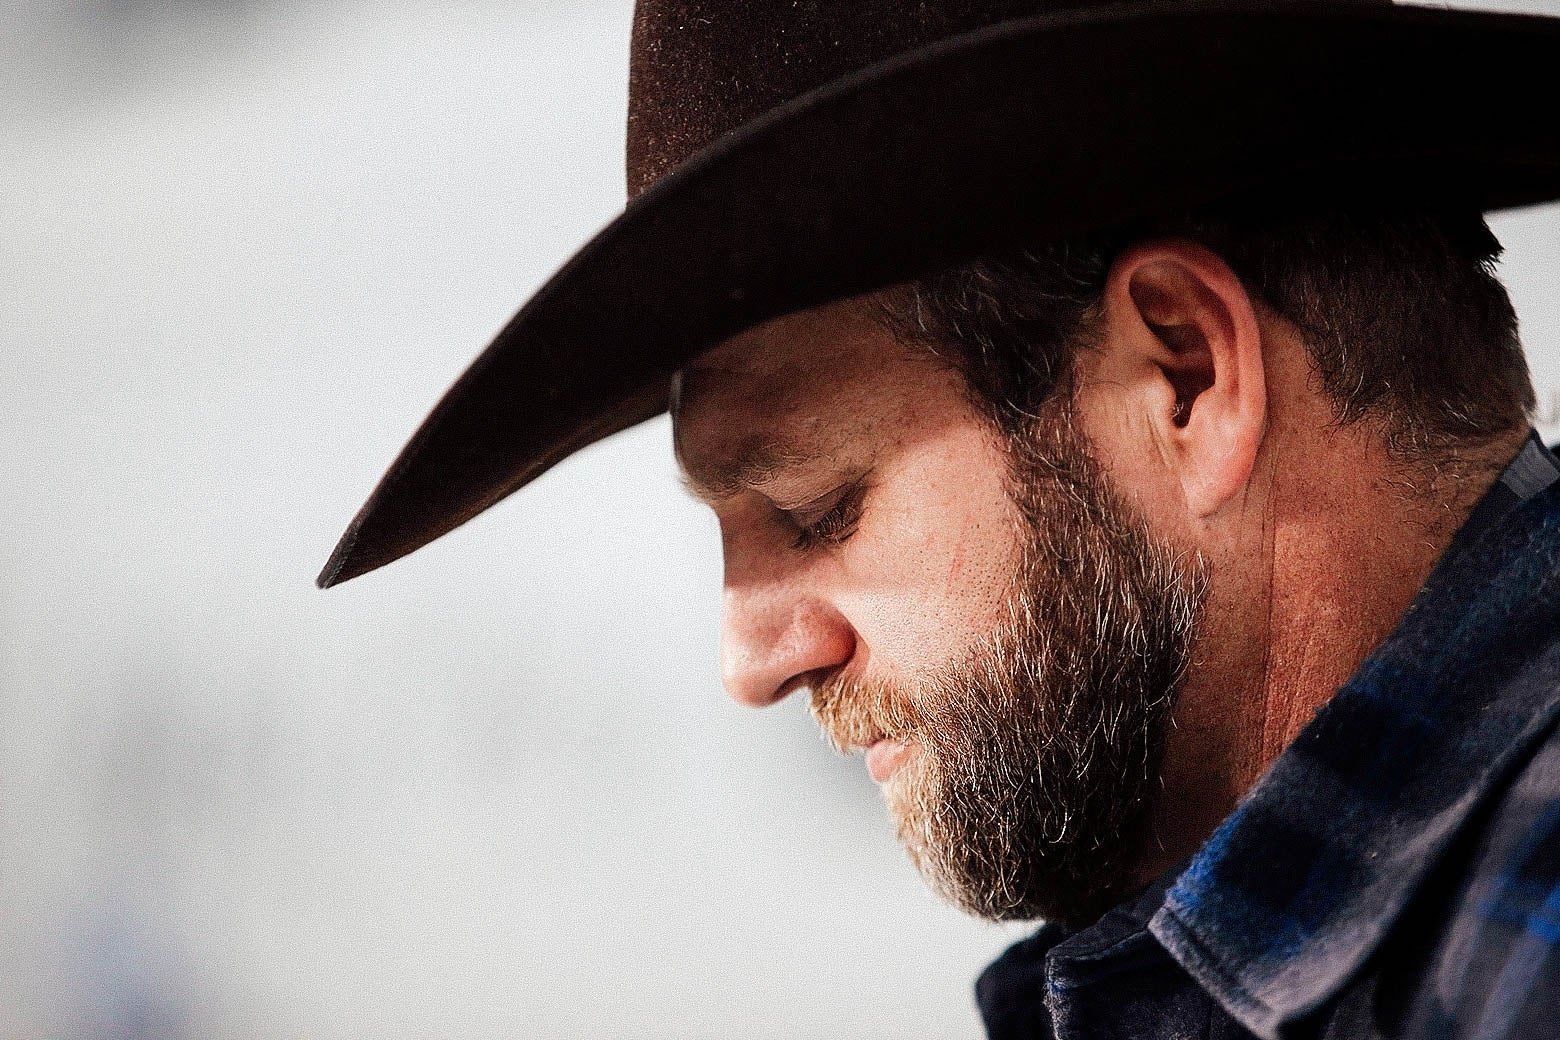 Ammon Bundy speaks to members of the media in front of the Malheur National Wildlife Refuge Headquarters on Jan. 5, 2016 near Burns, Oregon.